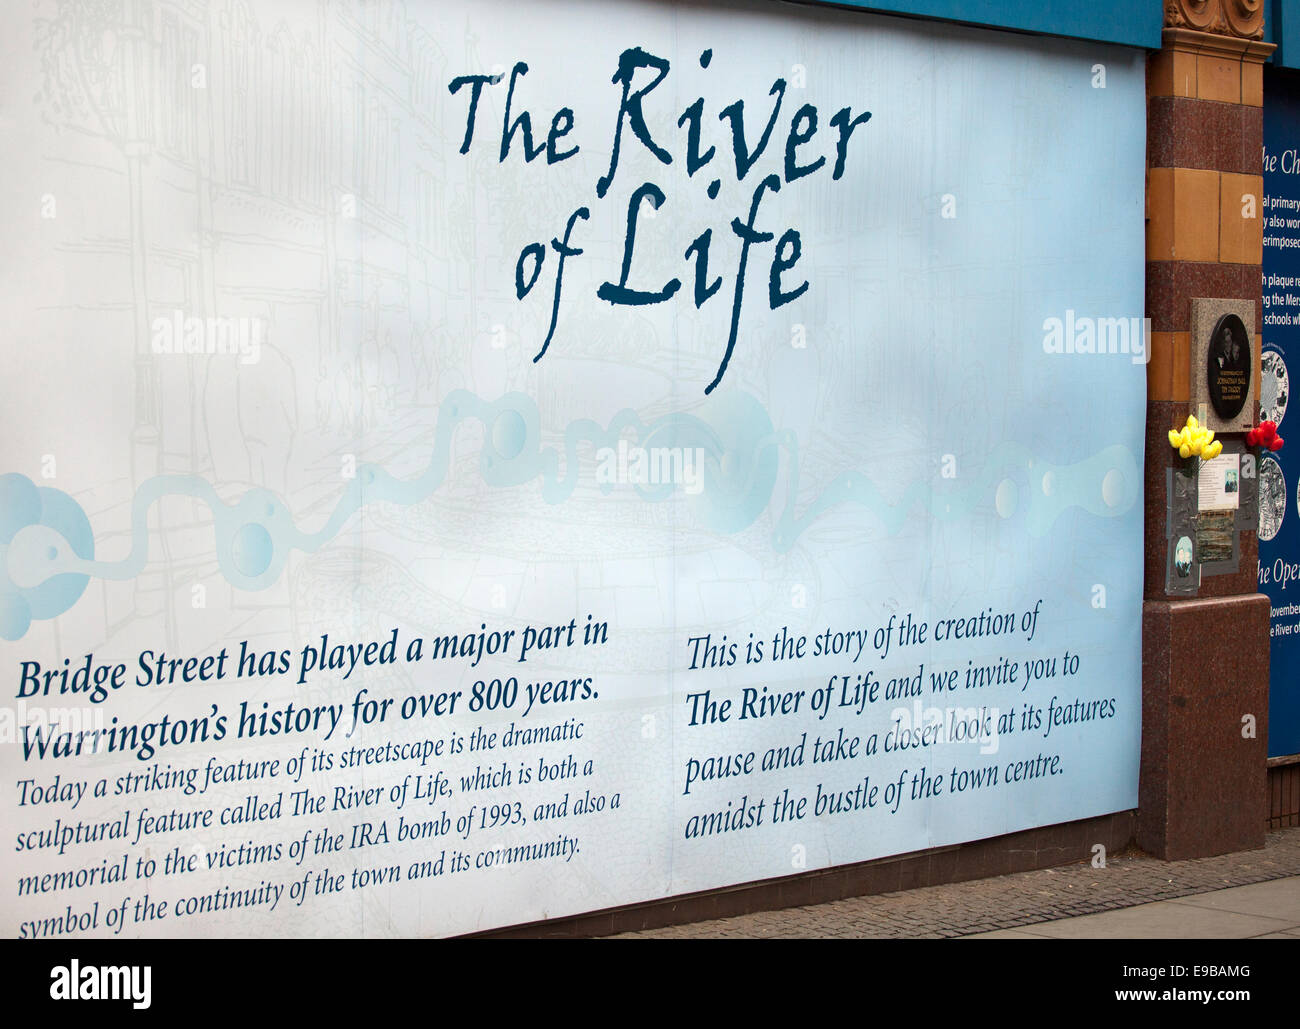 River of Life, A Poster commemorating the victims of the IRA bomb of 1993, and a symbol of the community of the - Stock Image